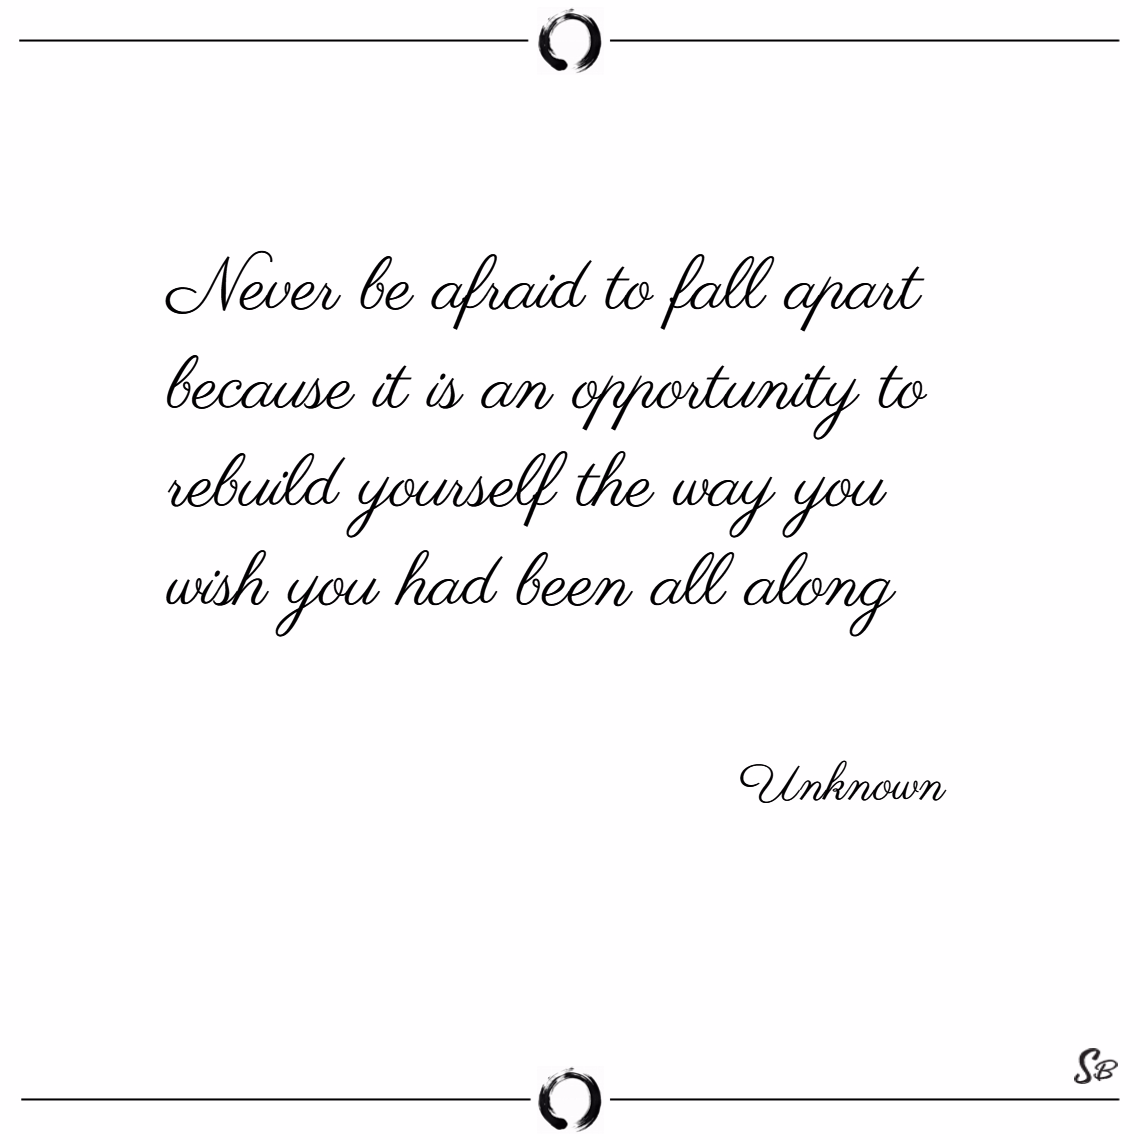 Never be afraid to fall apart because it is an opportunity to rebuild yourself the way you wish you had been all along. – unknown